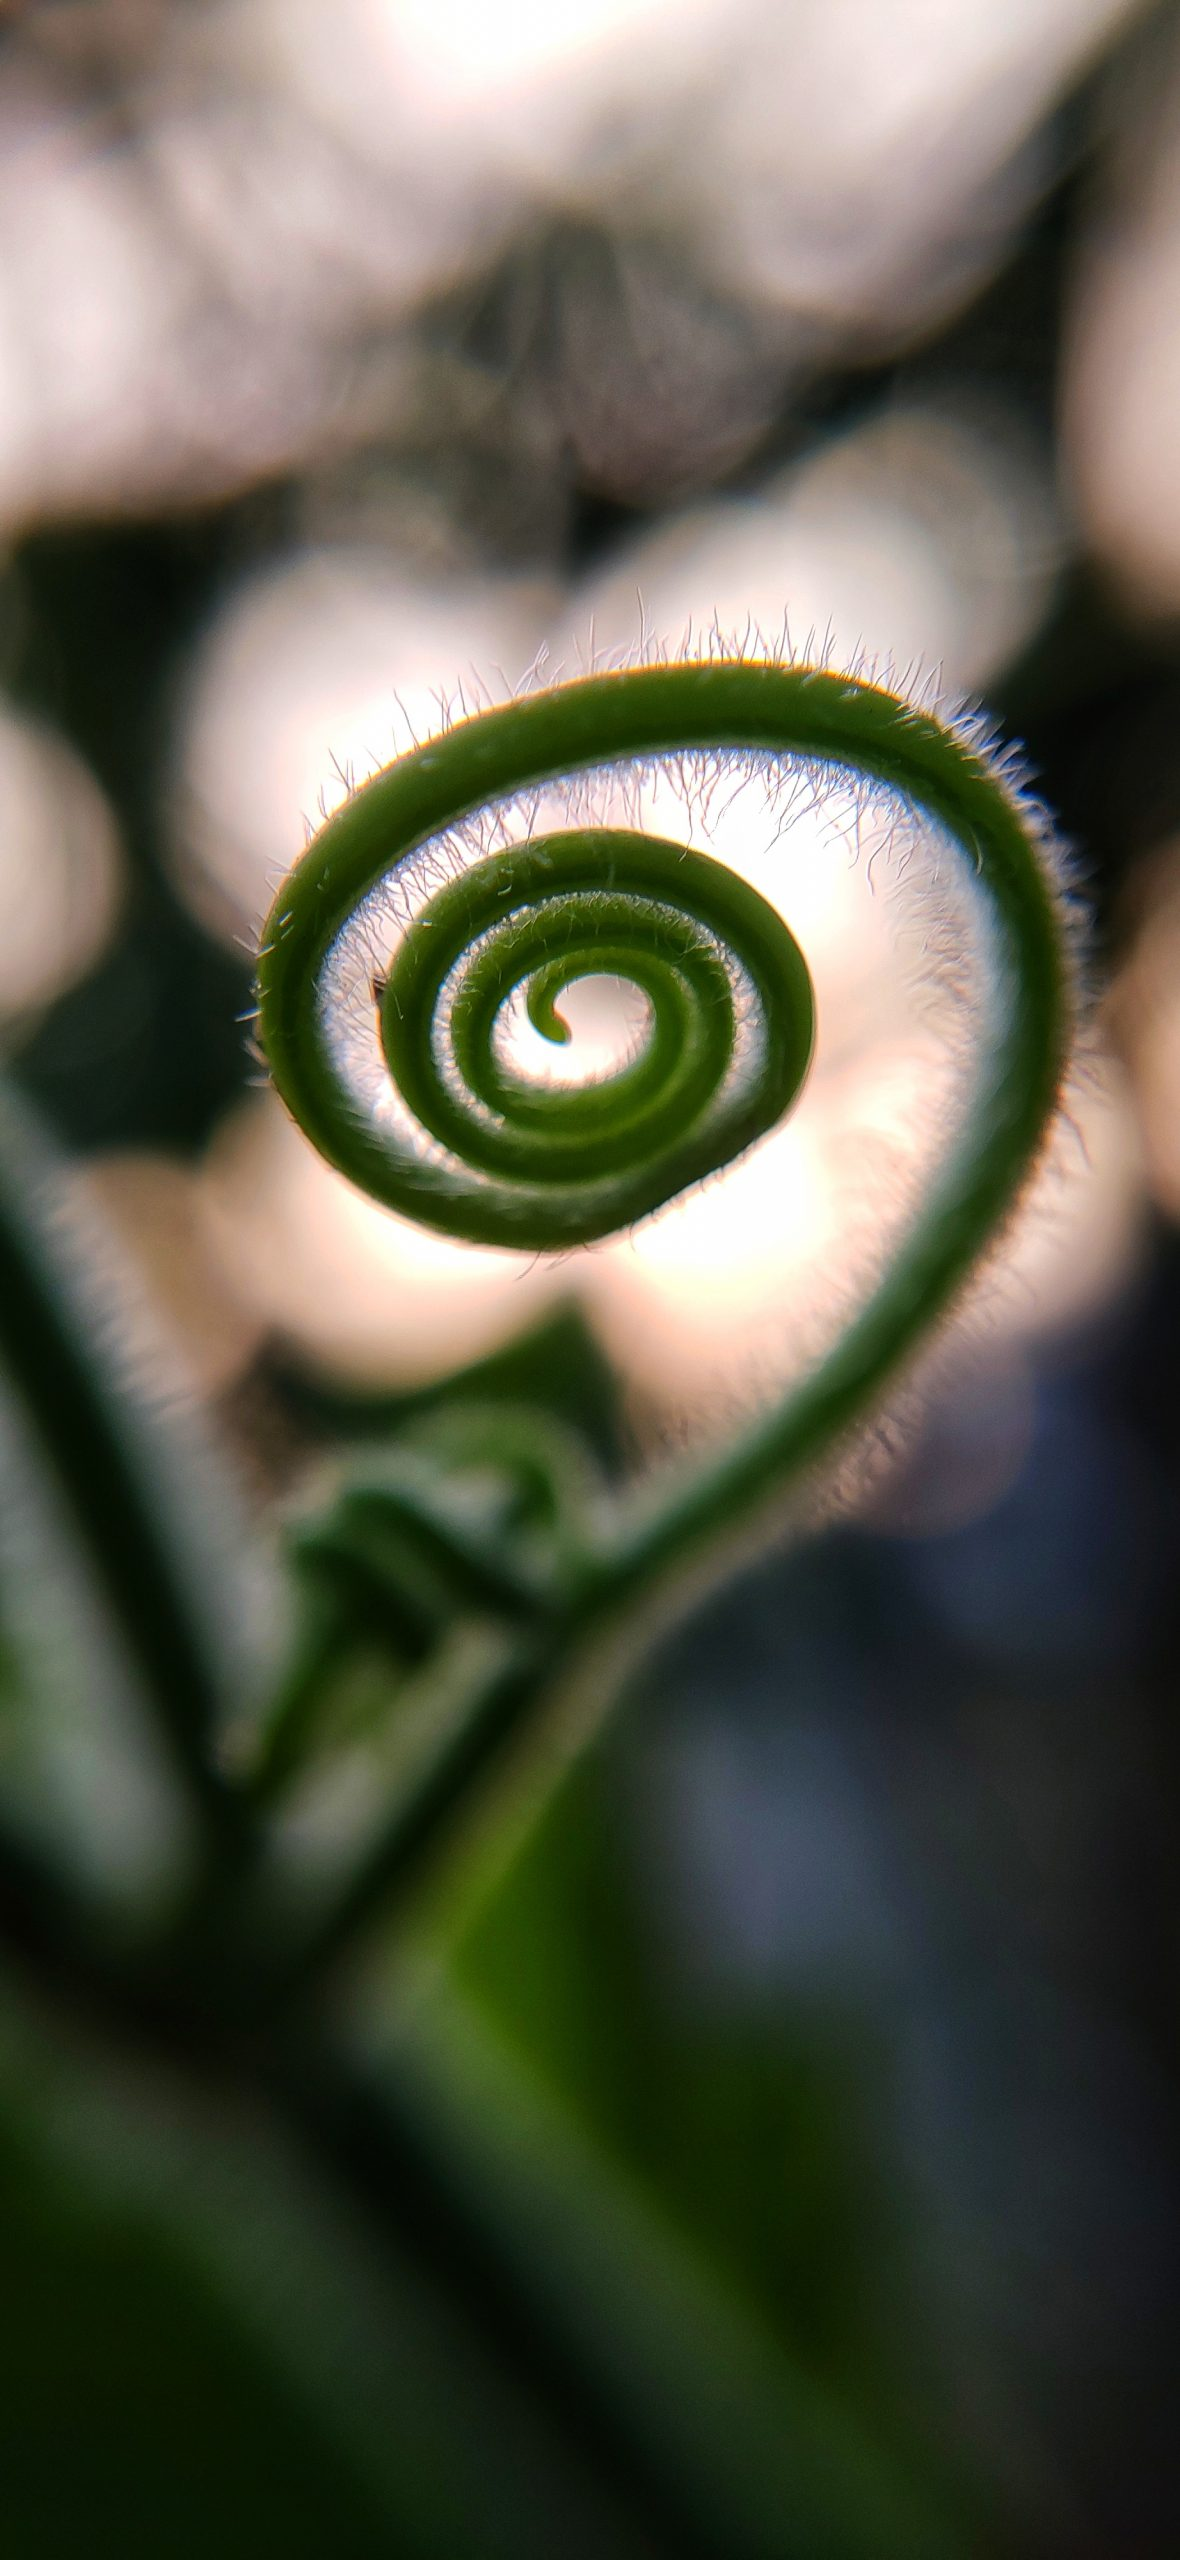 Coil of a vine plant